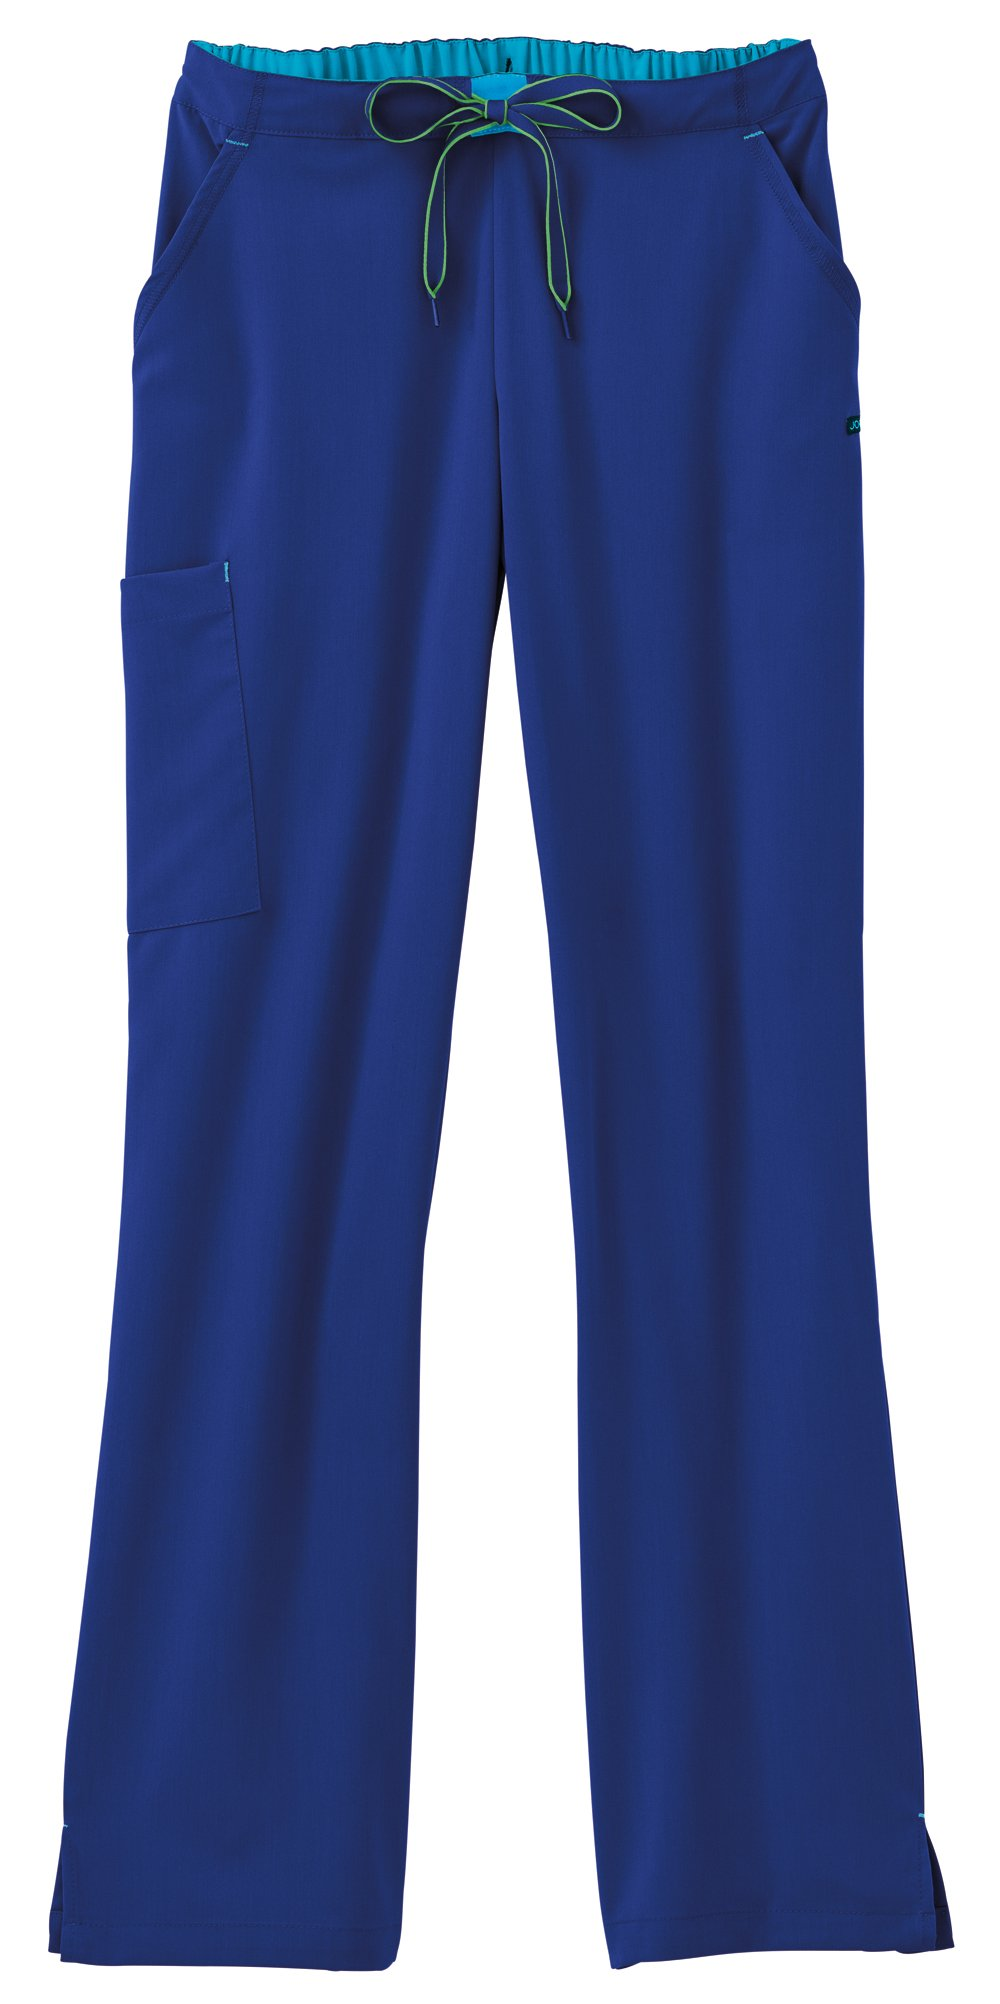 Modern Fit Collection By Jockey Women's Convertible Drawstring Scrub Pant XXX-Large Galaxy Blue